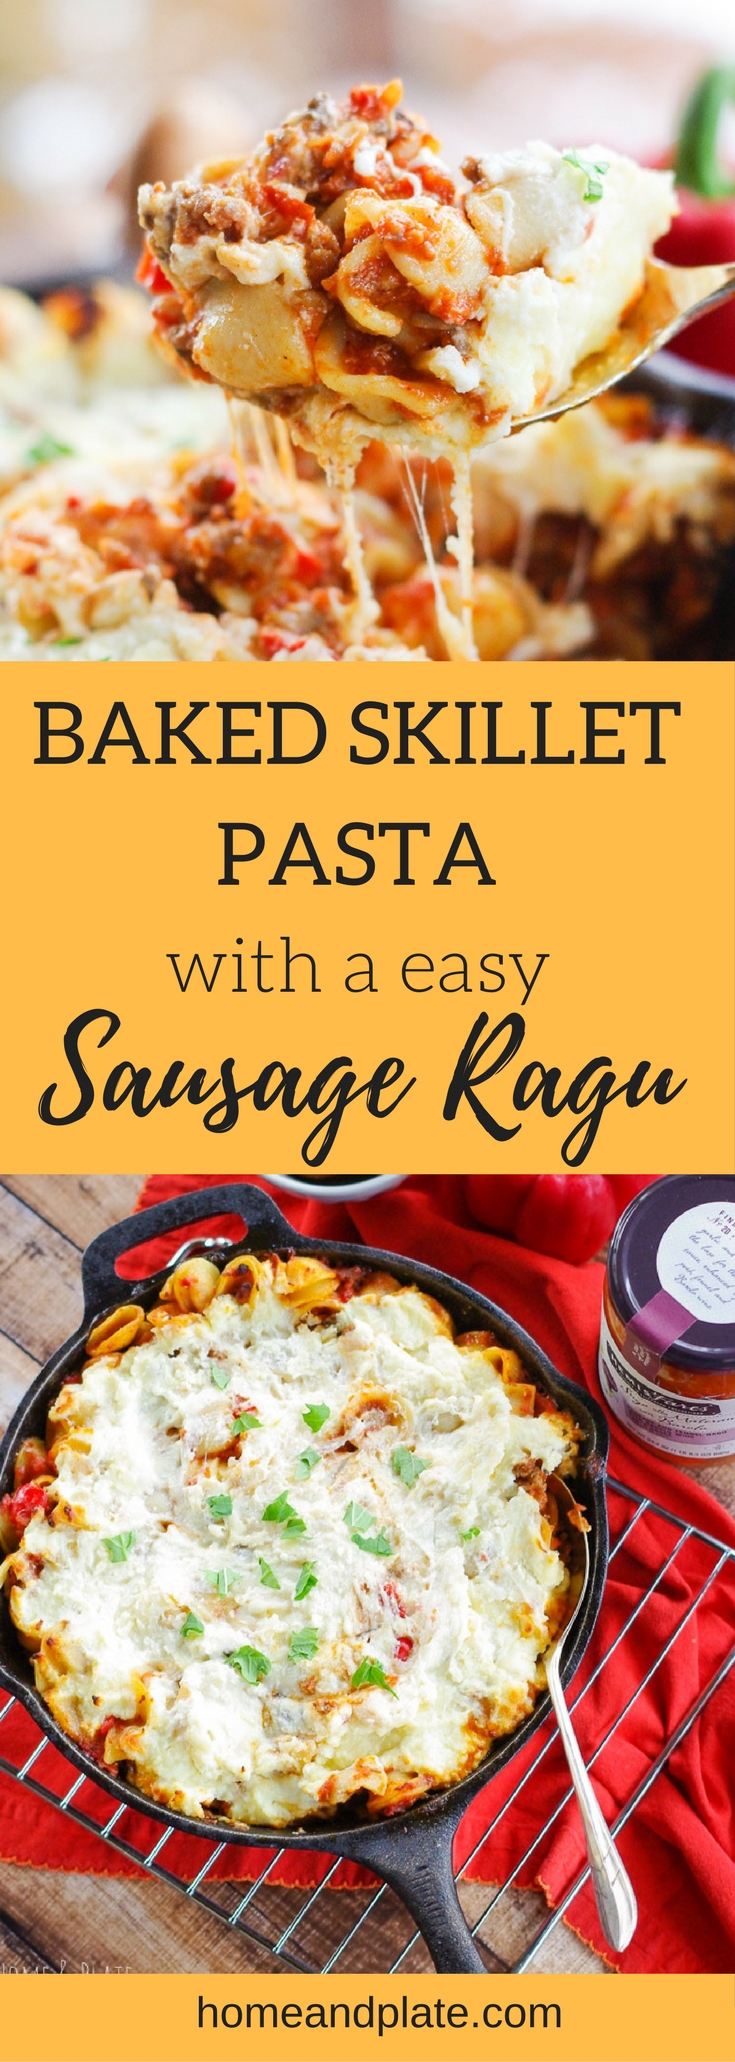 #ad | Baked Skillet Pasta with an Easy Sausage Ragu | This easy baked skillet pasta recipe features the flavors of pork sausage and fennel in a red wine ragu. It's cheesy, meaty and delicious and can be on your table in under an hour. | www.homeandplate.com